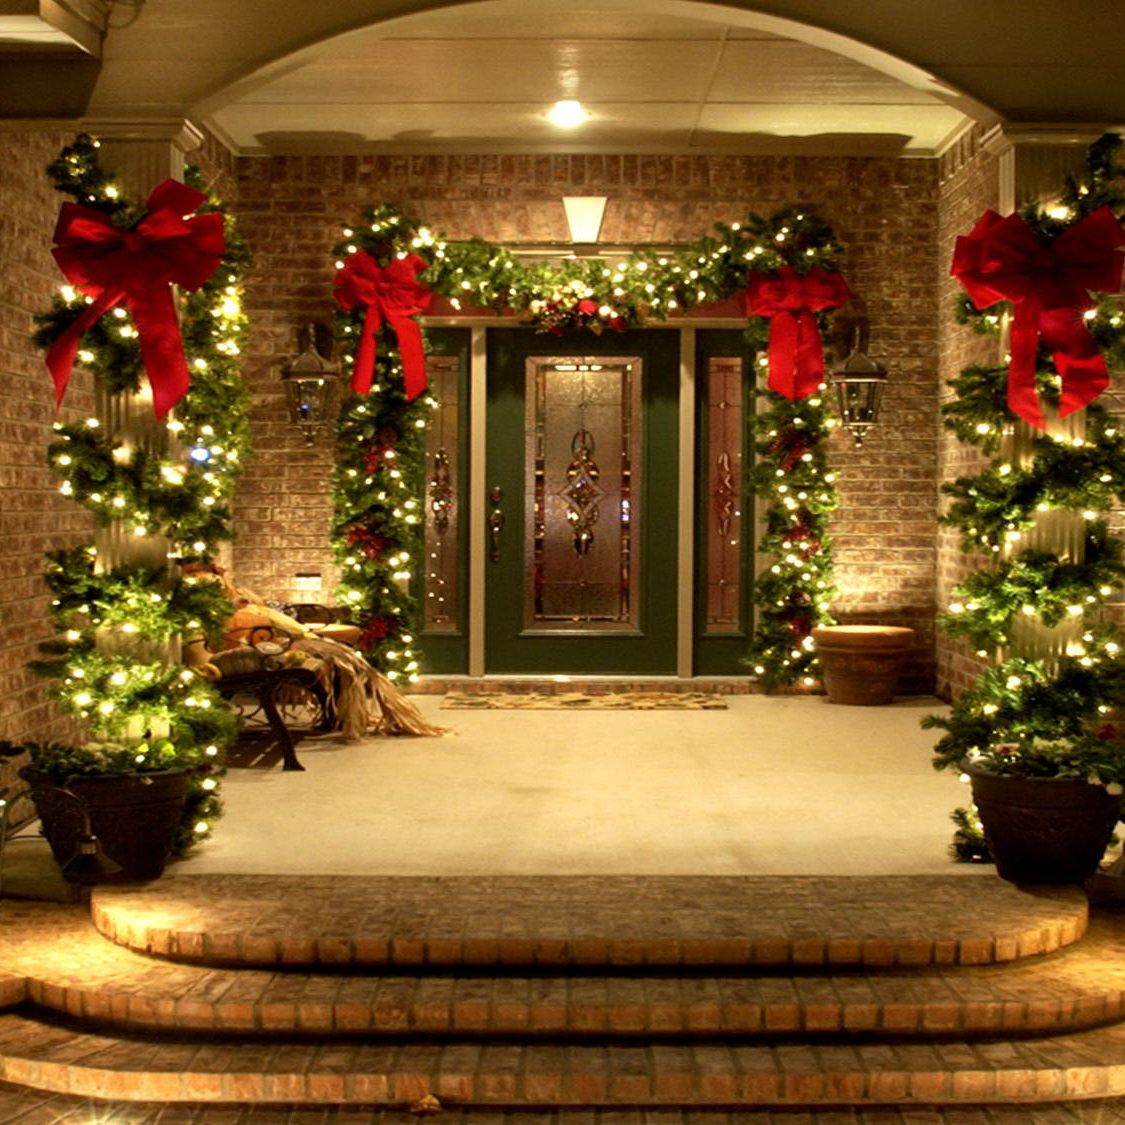 Garage door christmas decorations - Decoration